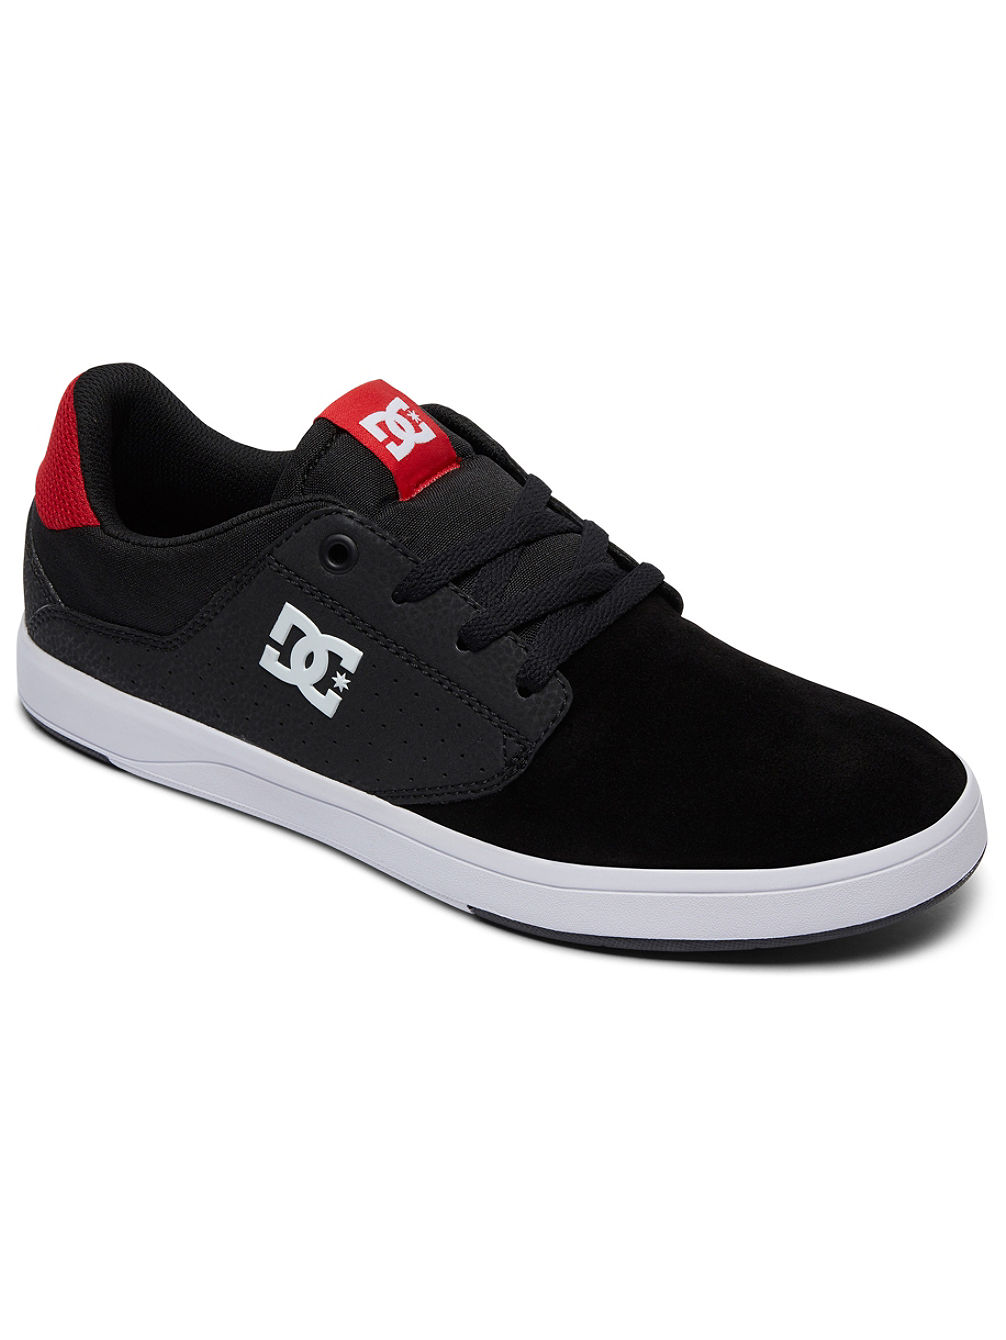 Plaza TC Zapatillas de skate